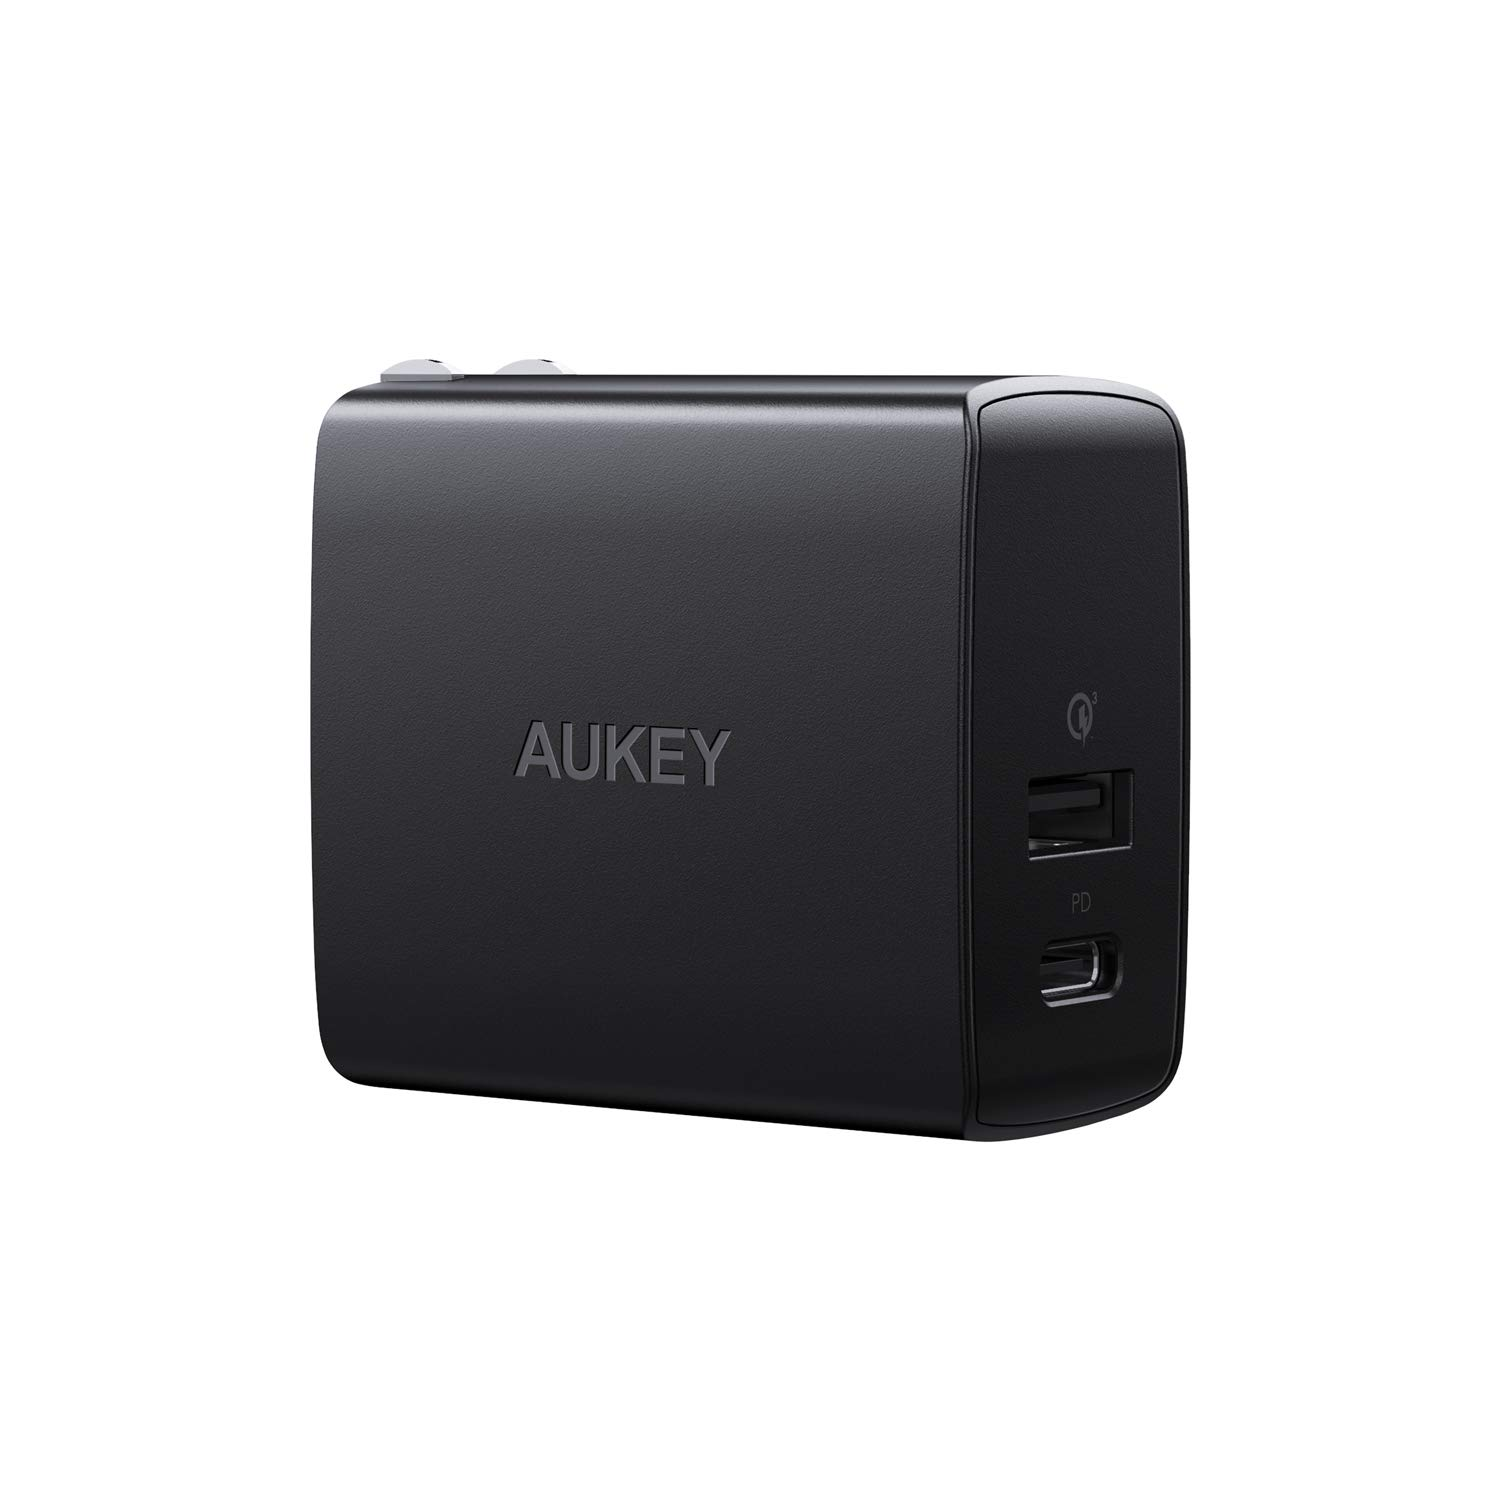 AUKEY USB C Charger with Power Delivery & Quick Charge 3.0 Ports, 18W USB Wall Charger, Compatible iPhone Xs/Xs Max/XR, Google Pixel 2/2 XL, Samsung Galaxy S9+ / Note9, LG, and More by AUKEY